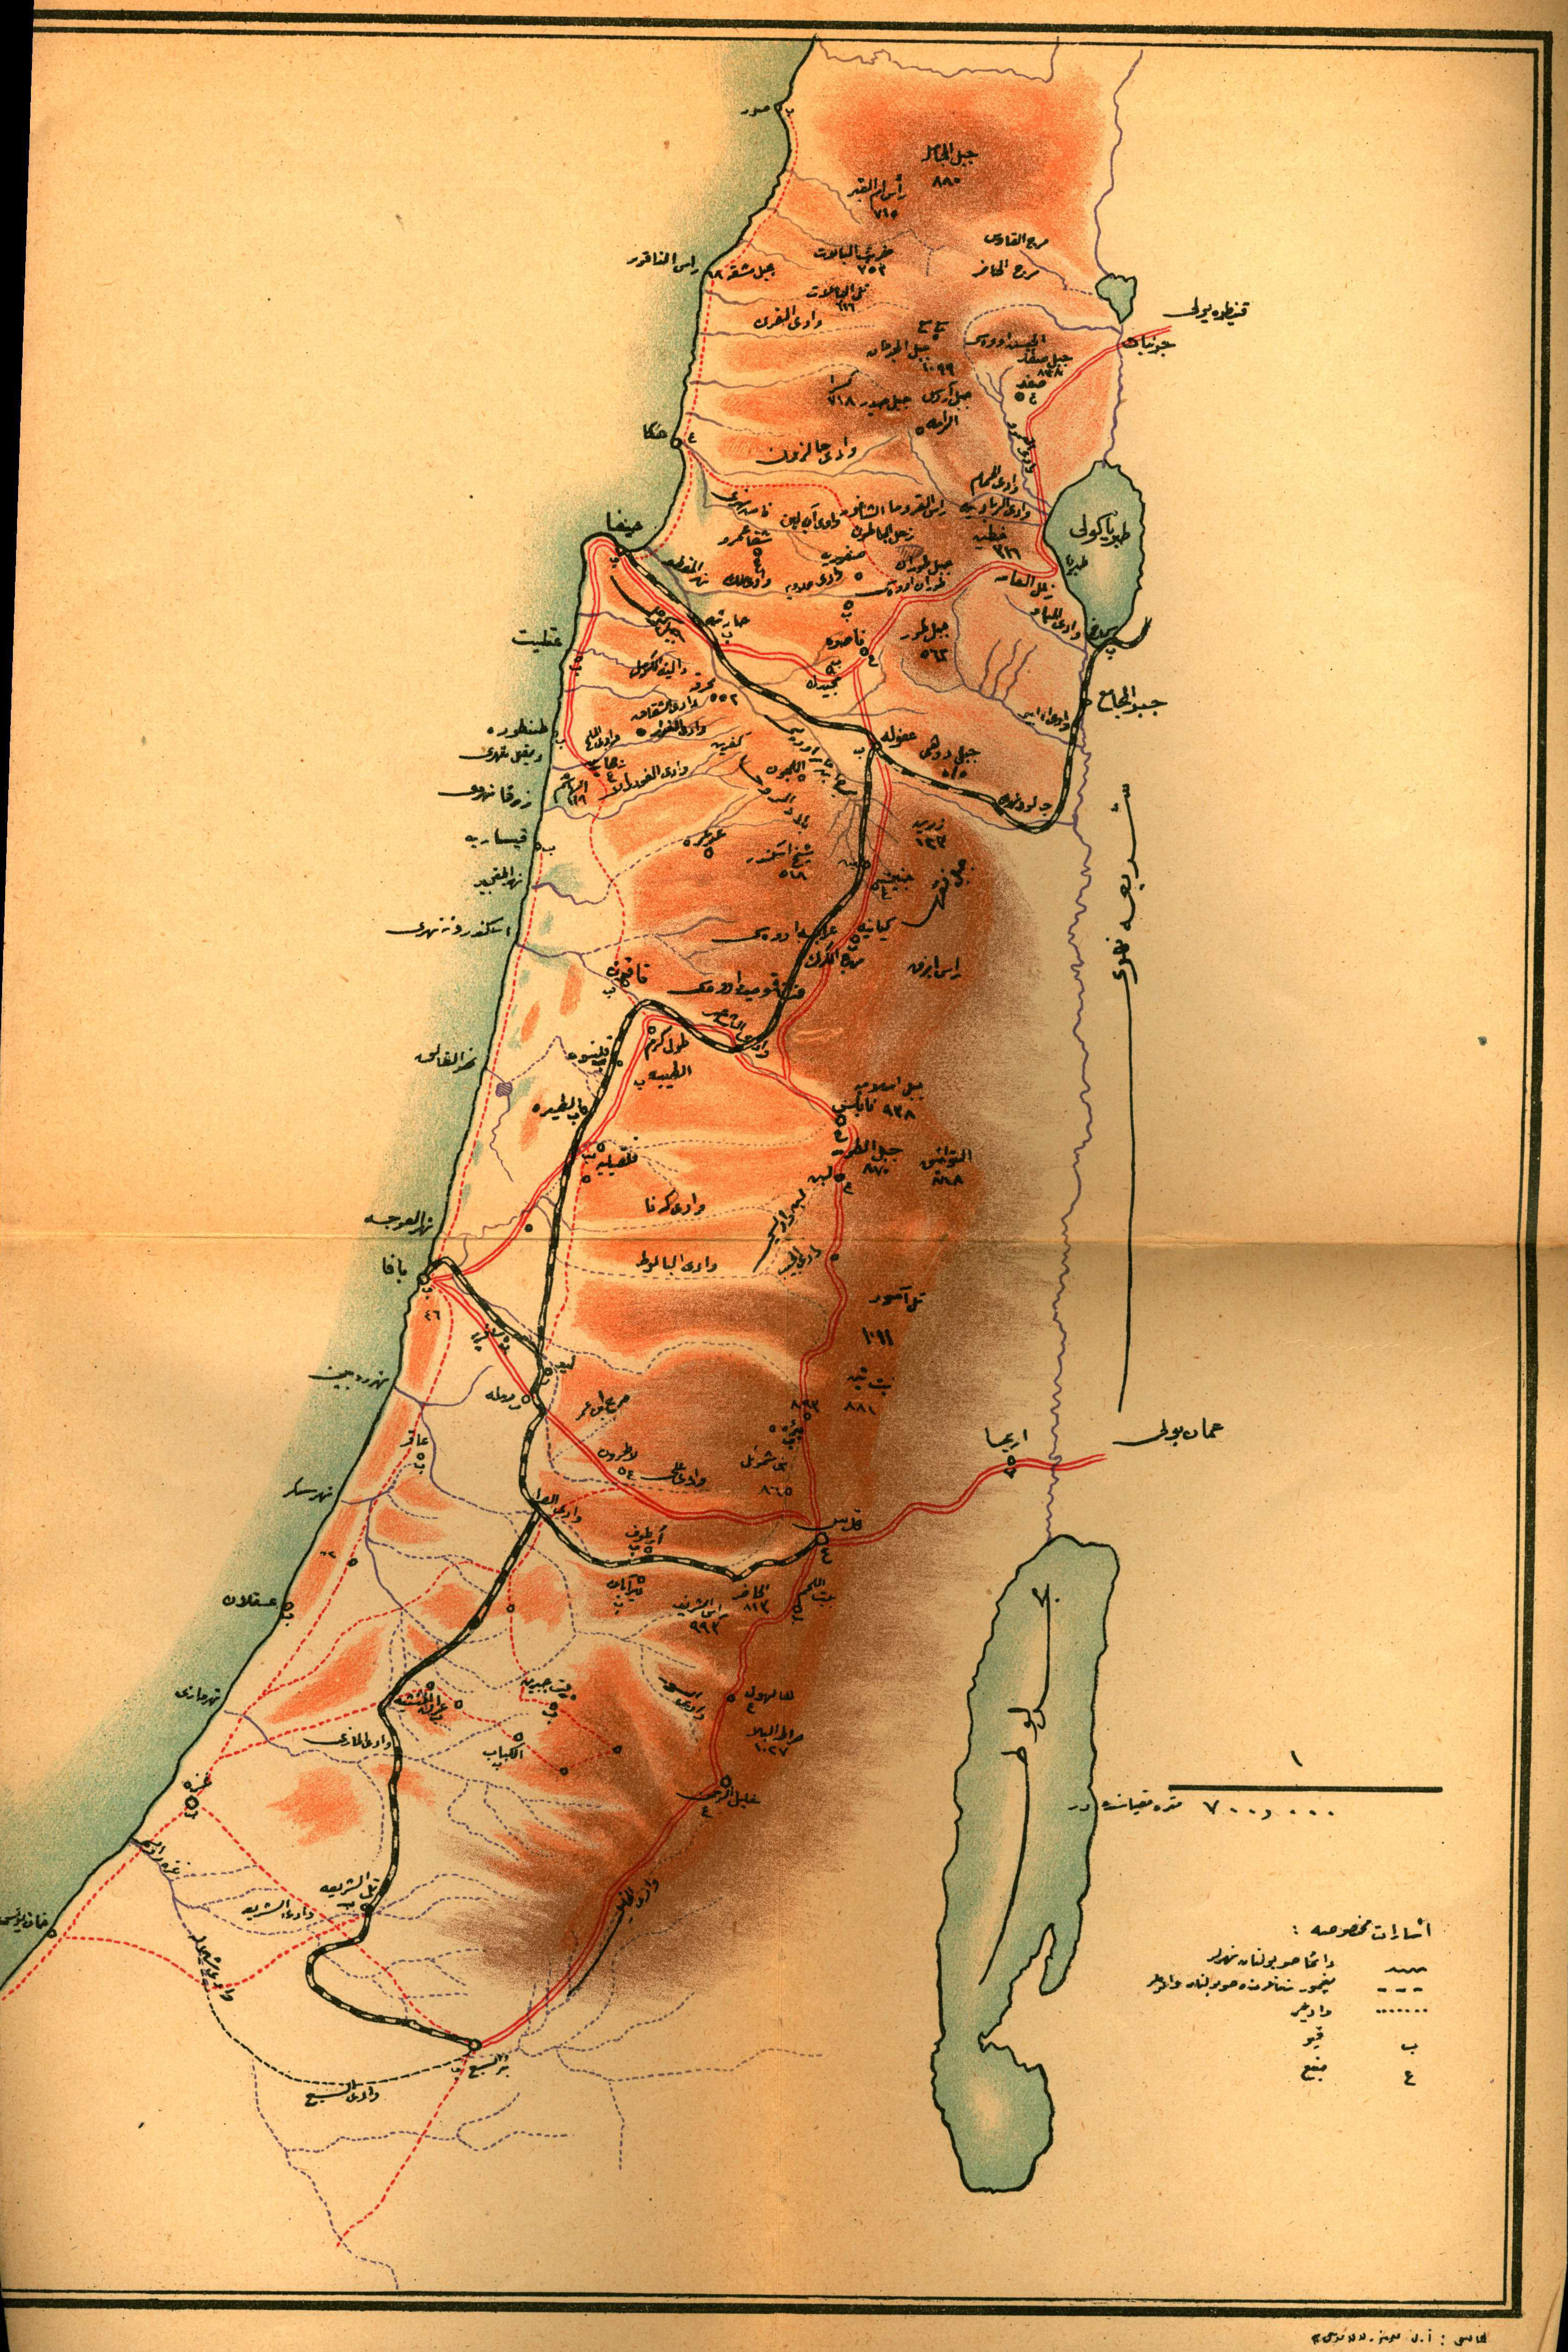 Afternoon Map Ottoman And Arab Maps Of Palestine Ss - Map of palestine